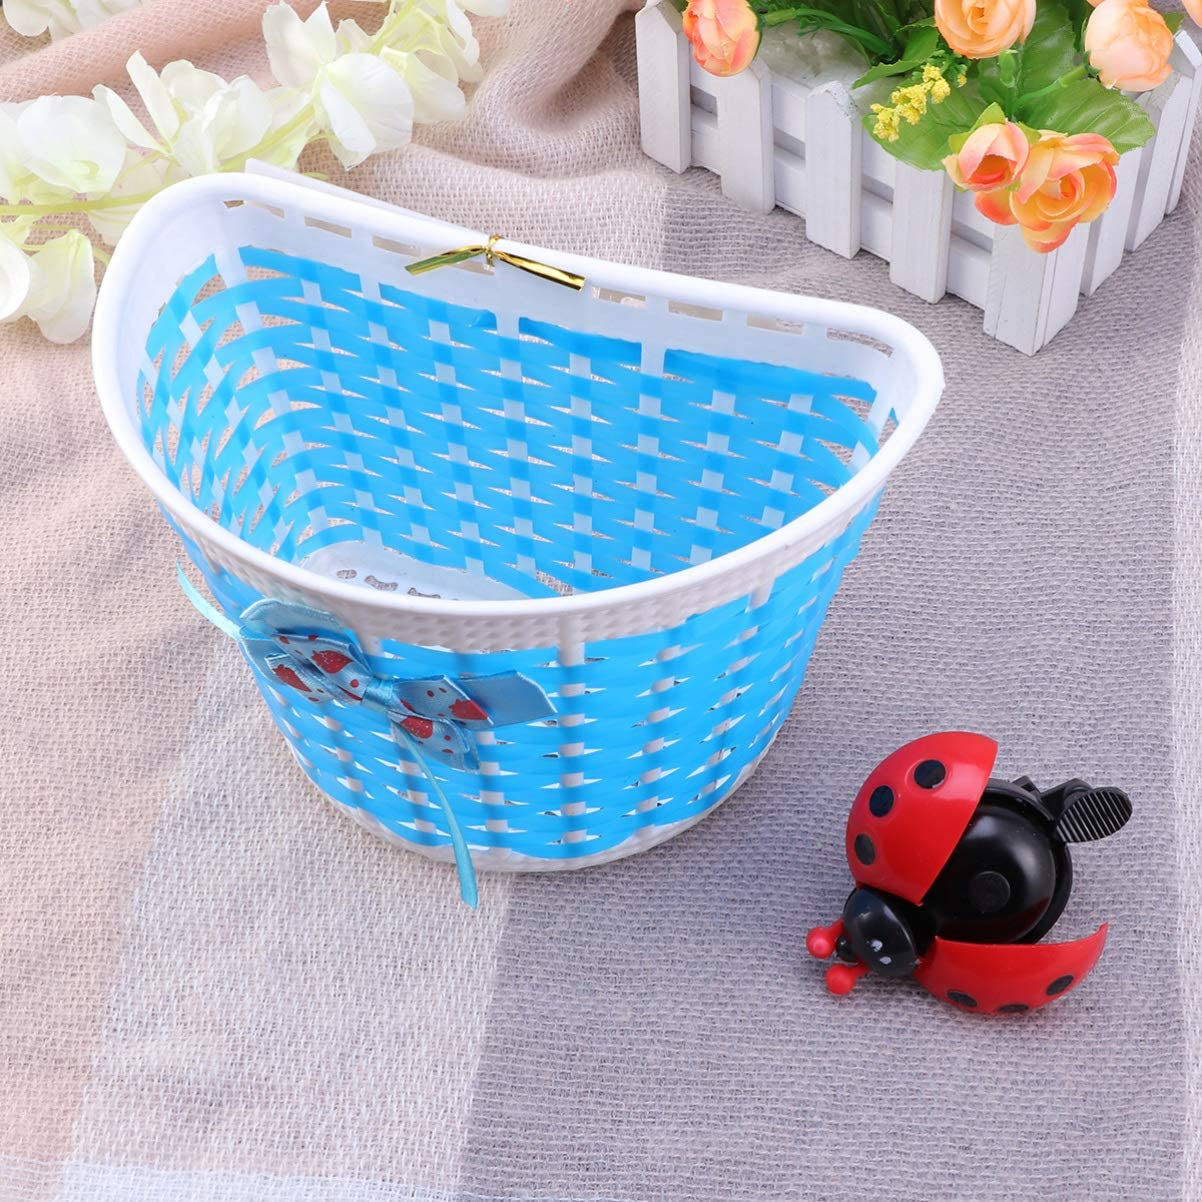 BESPORTBLE Bicycle Scooter Basket Kids Children Bike Basket Plastic Knitted Bow Knot Front Front Basket with Bike Bells Black